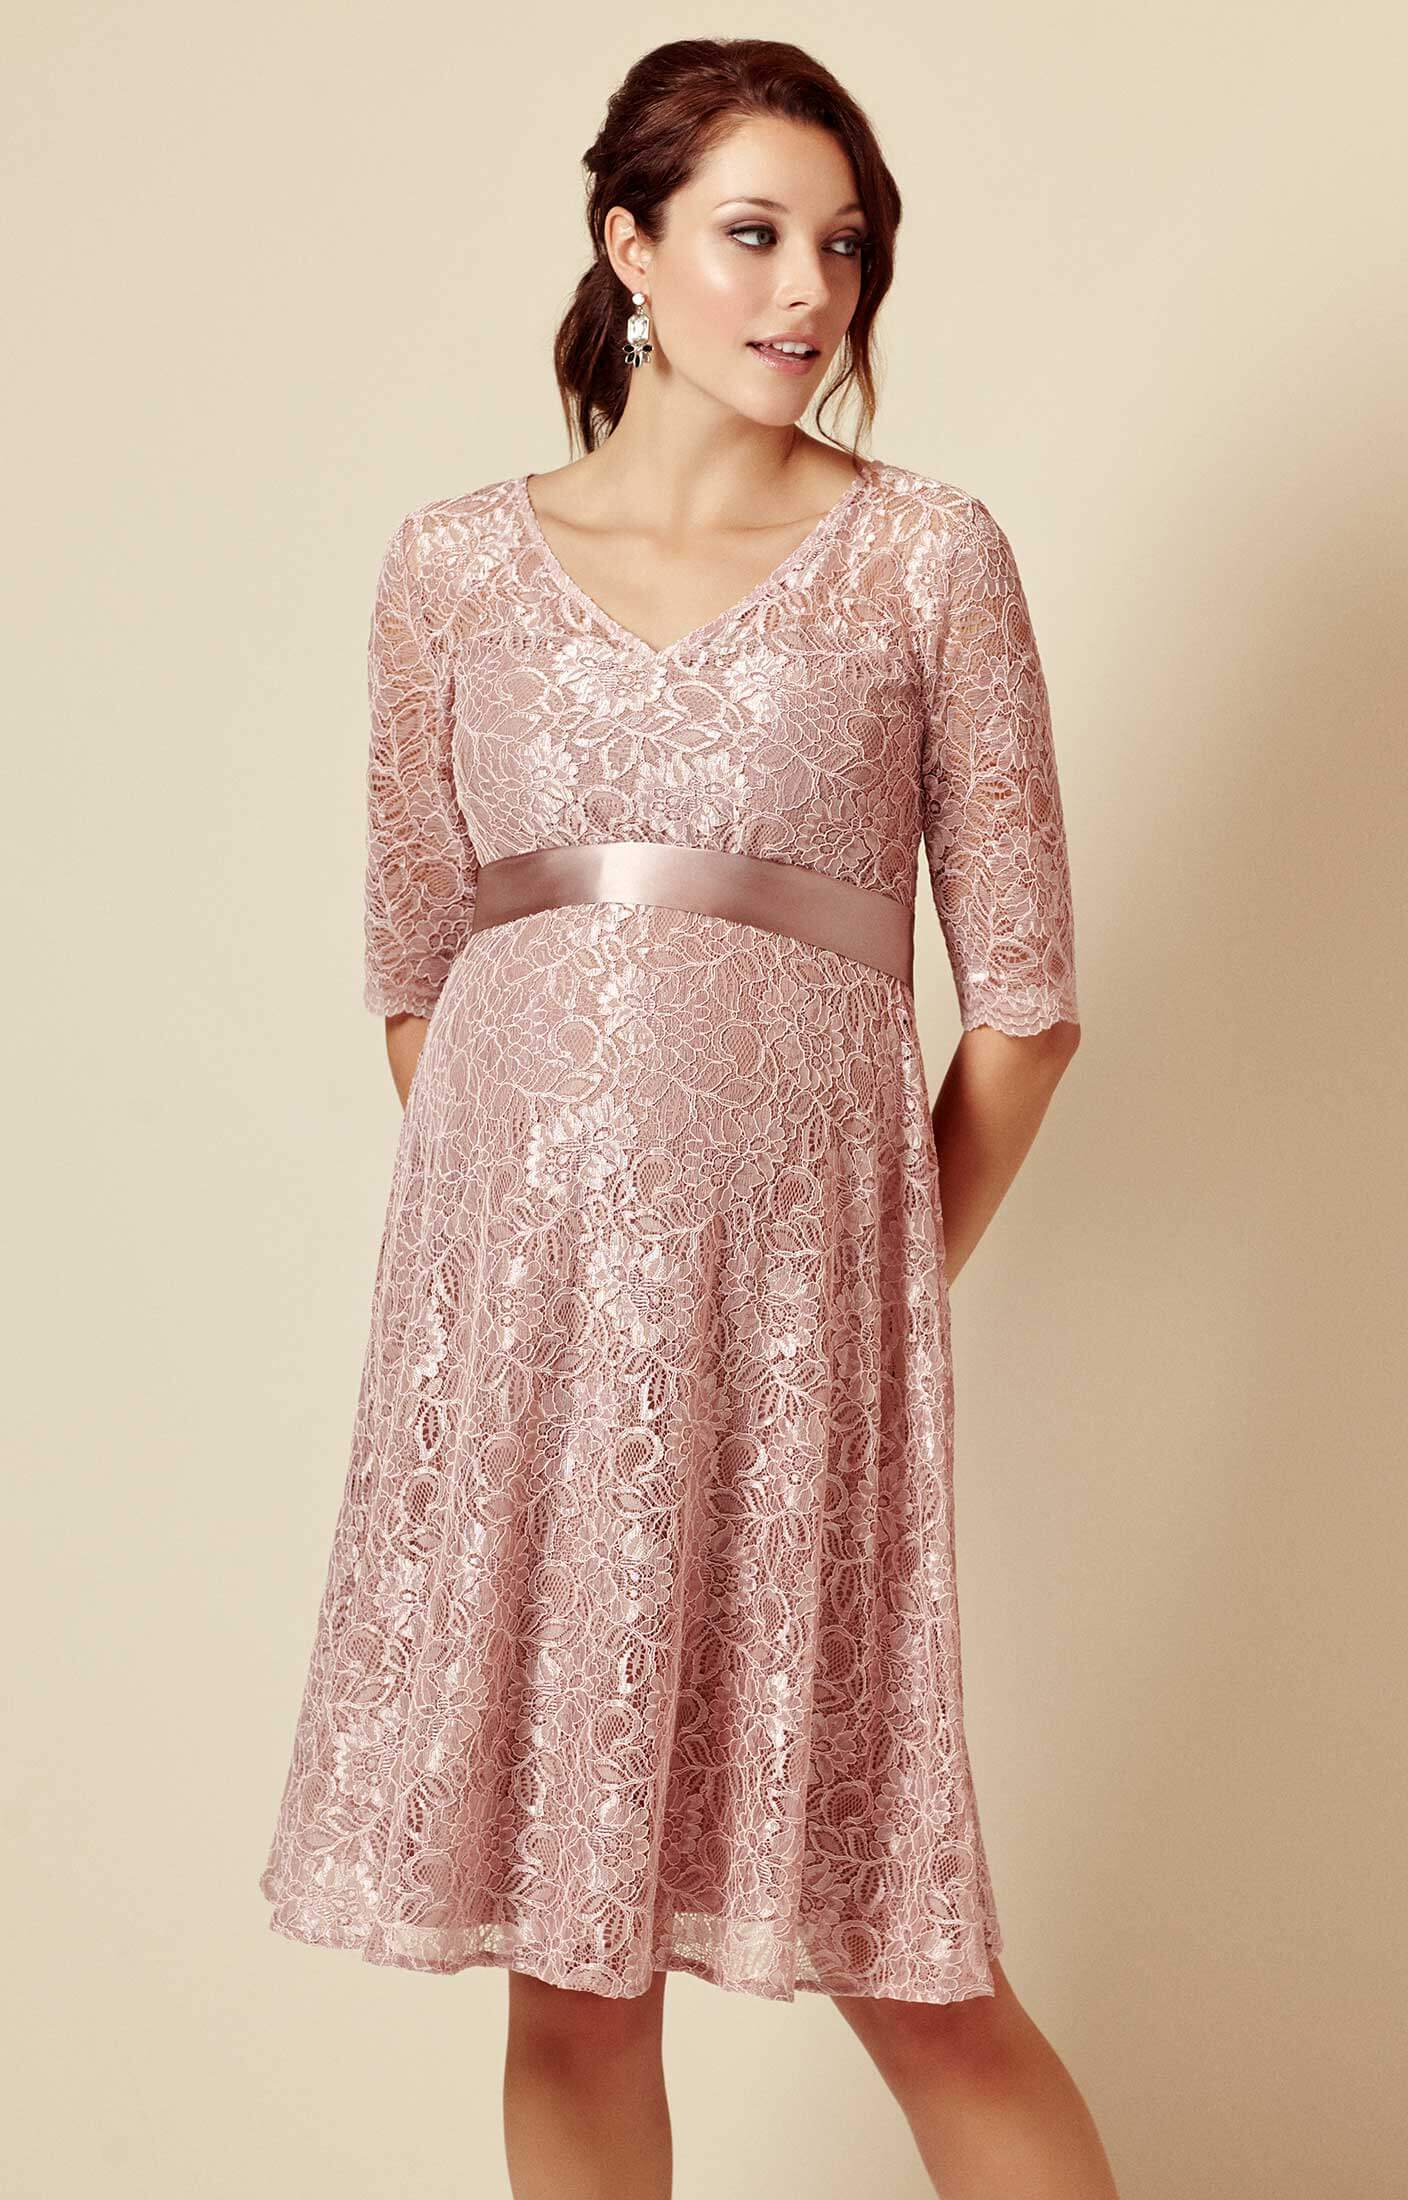 Flossie Maternity Dress Short Orchid Blush - Maternity Wedding ...